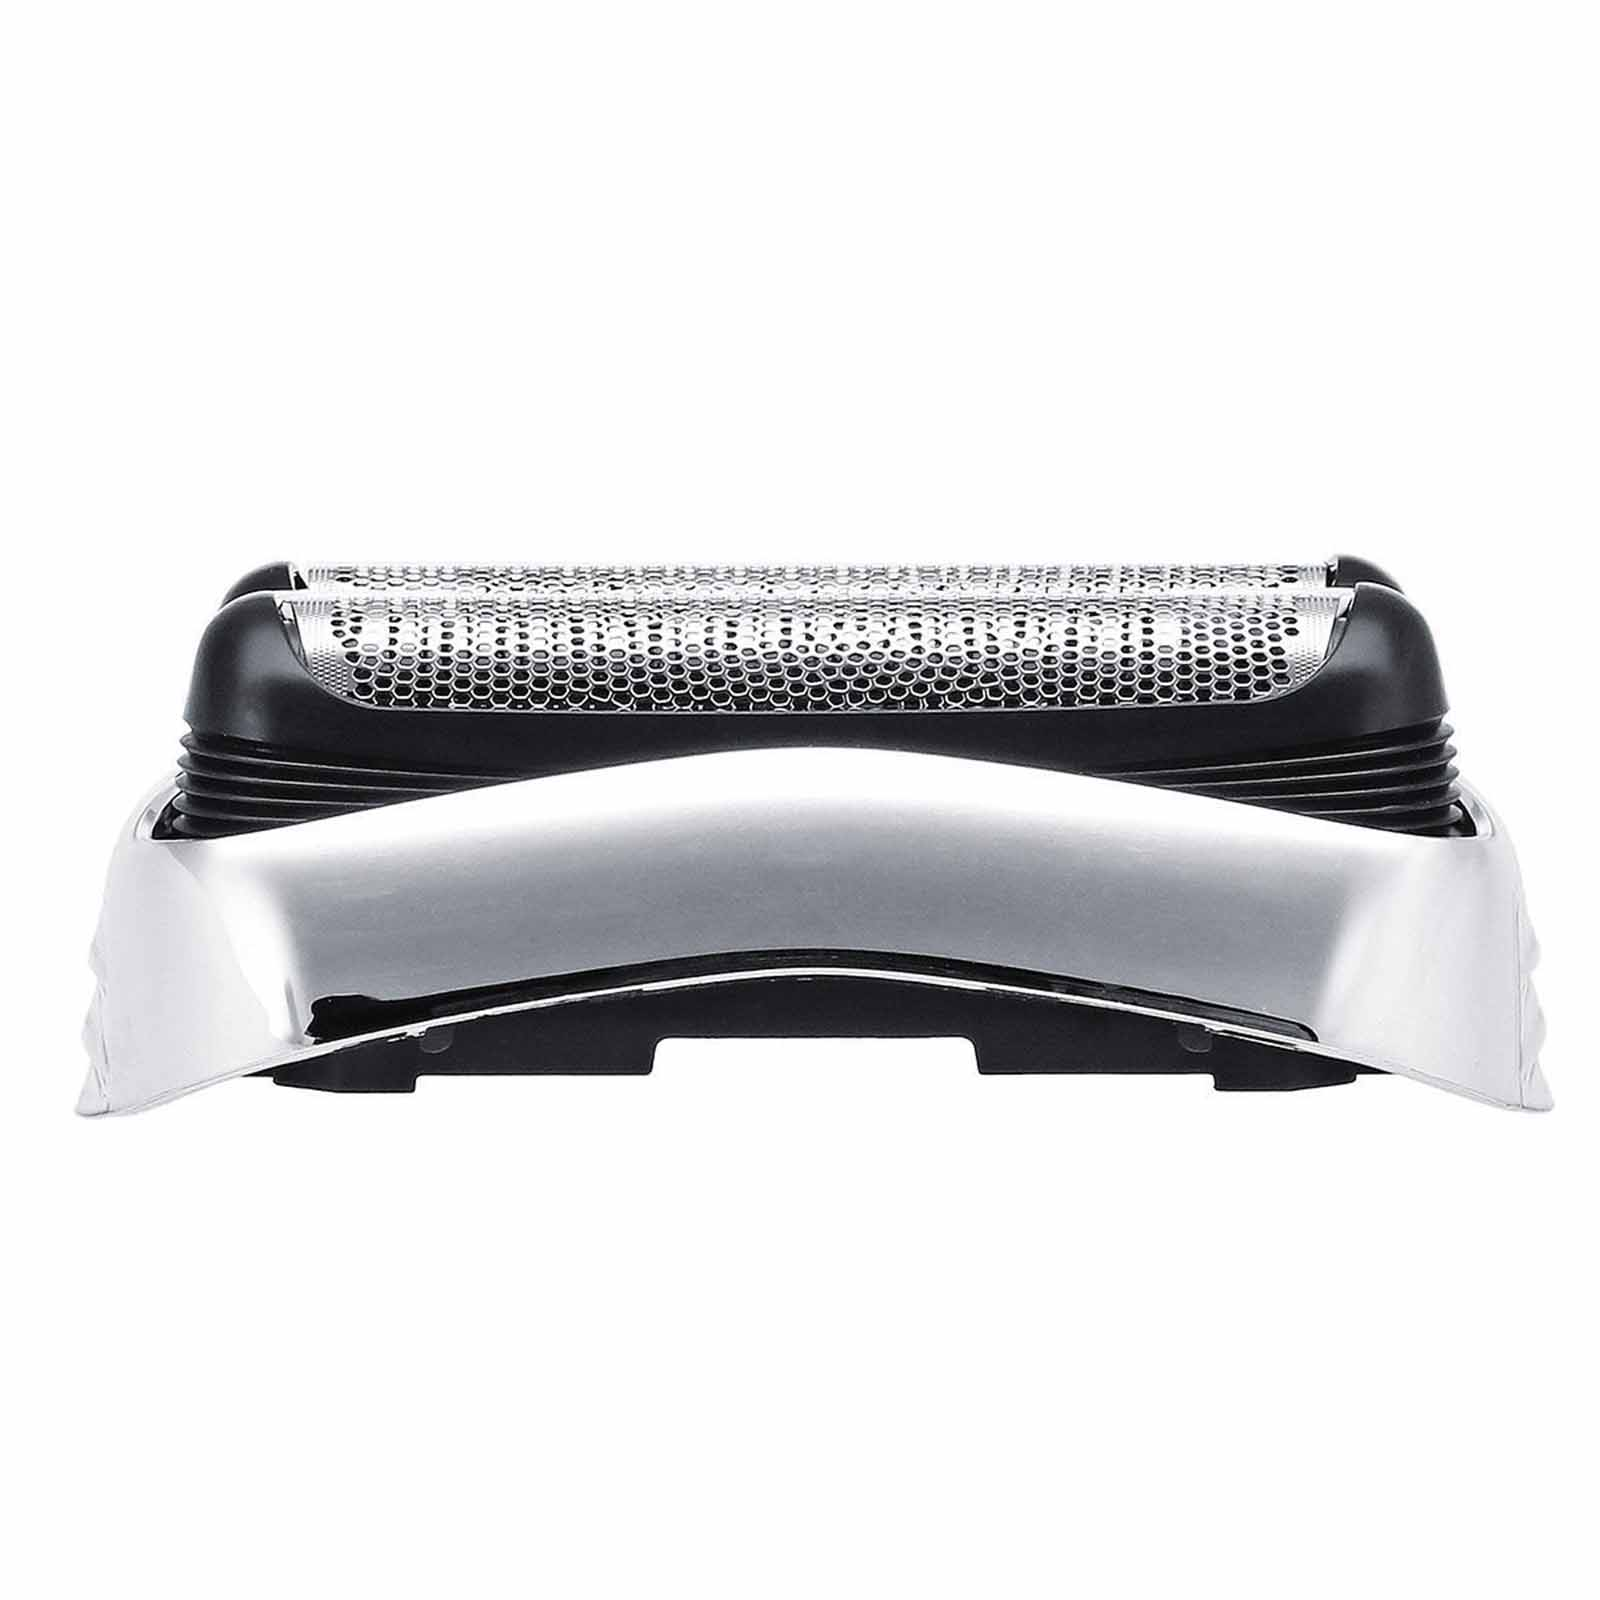 Image 3 - For Braun Electric Shaver Head Accessories Foil Cutter Head Cassette 32B 32S for Braun Electric Razor Shaver Series 3 320 330-in Personal Care Appliance Parts from Home Appliances